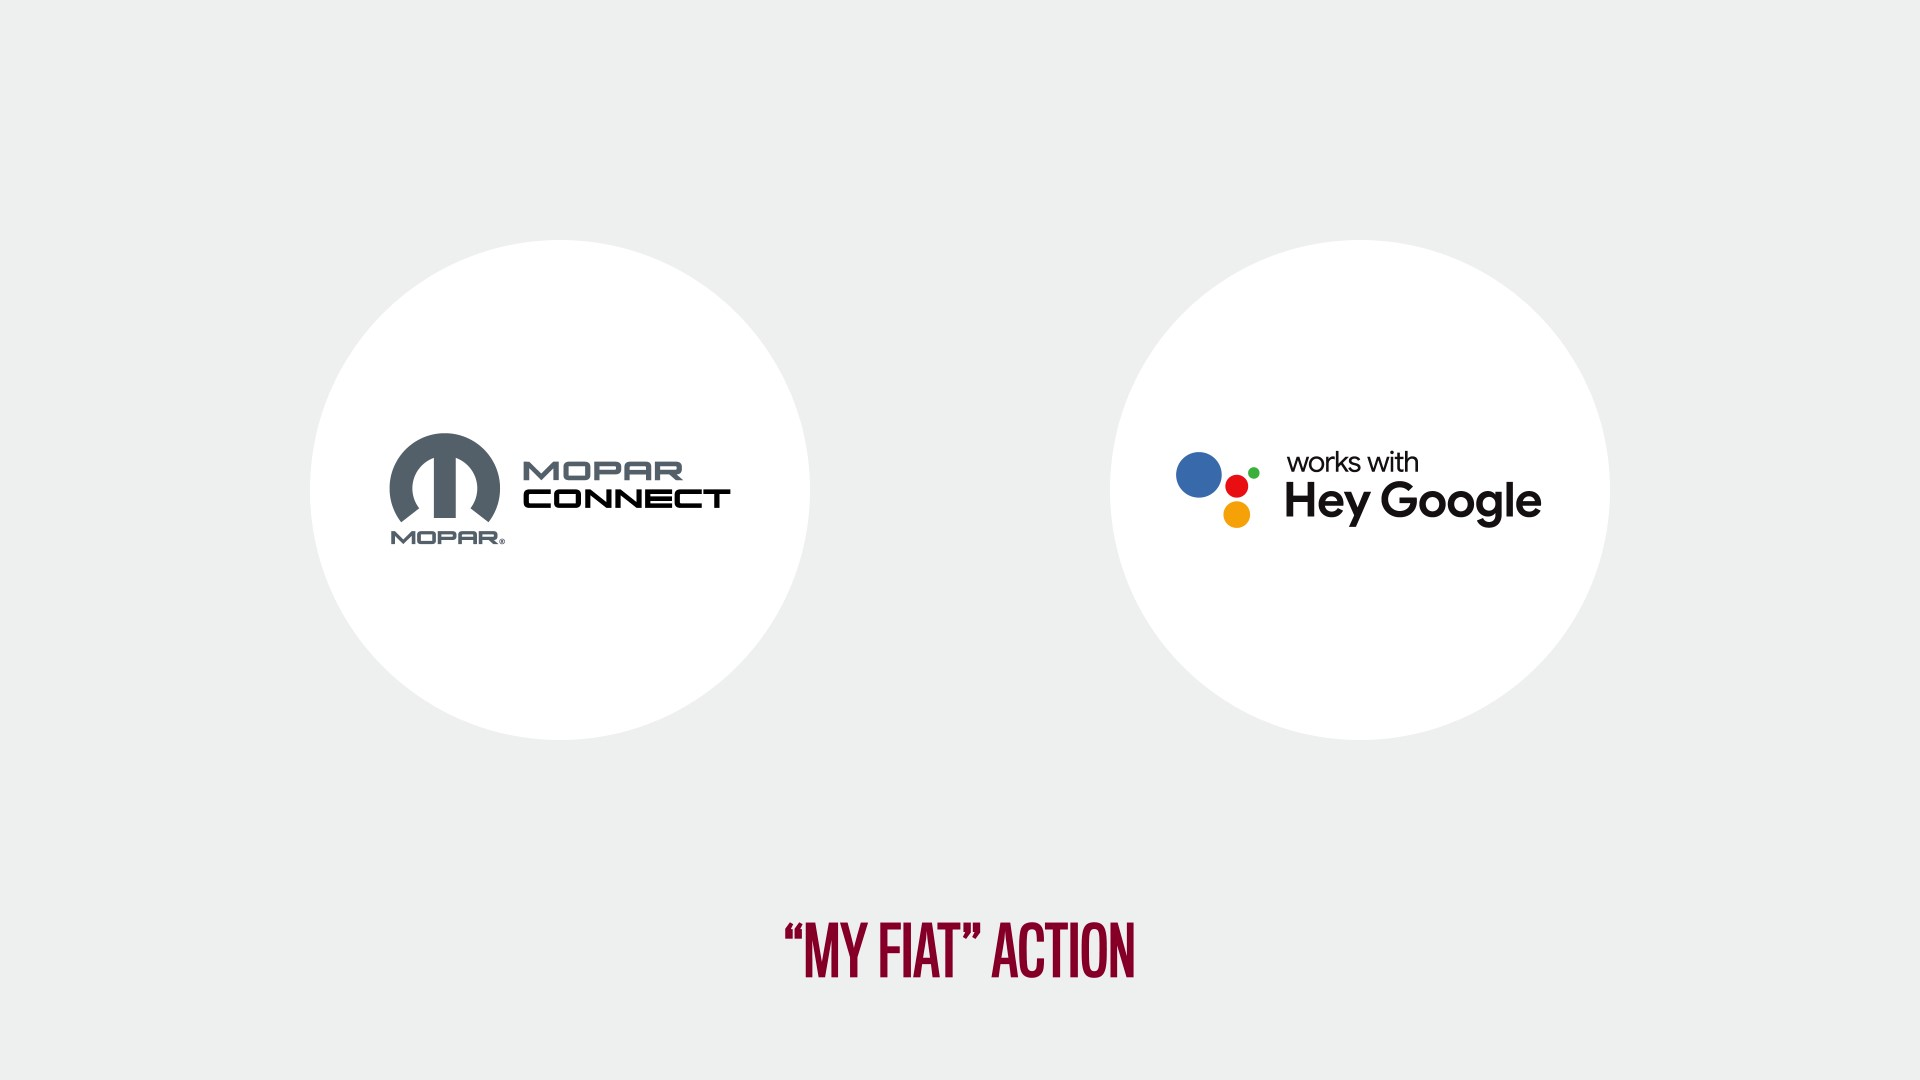 New 500 Family Hey Google - Mopar Connect integration with Google Assistant_Videoclip